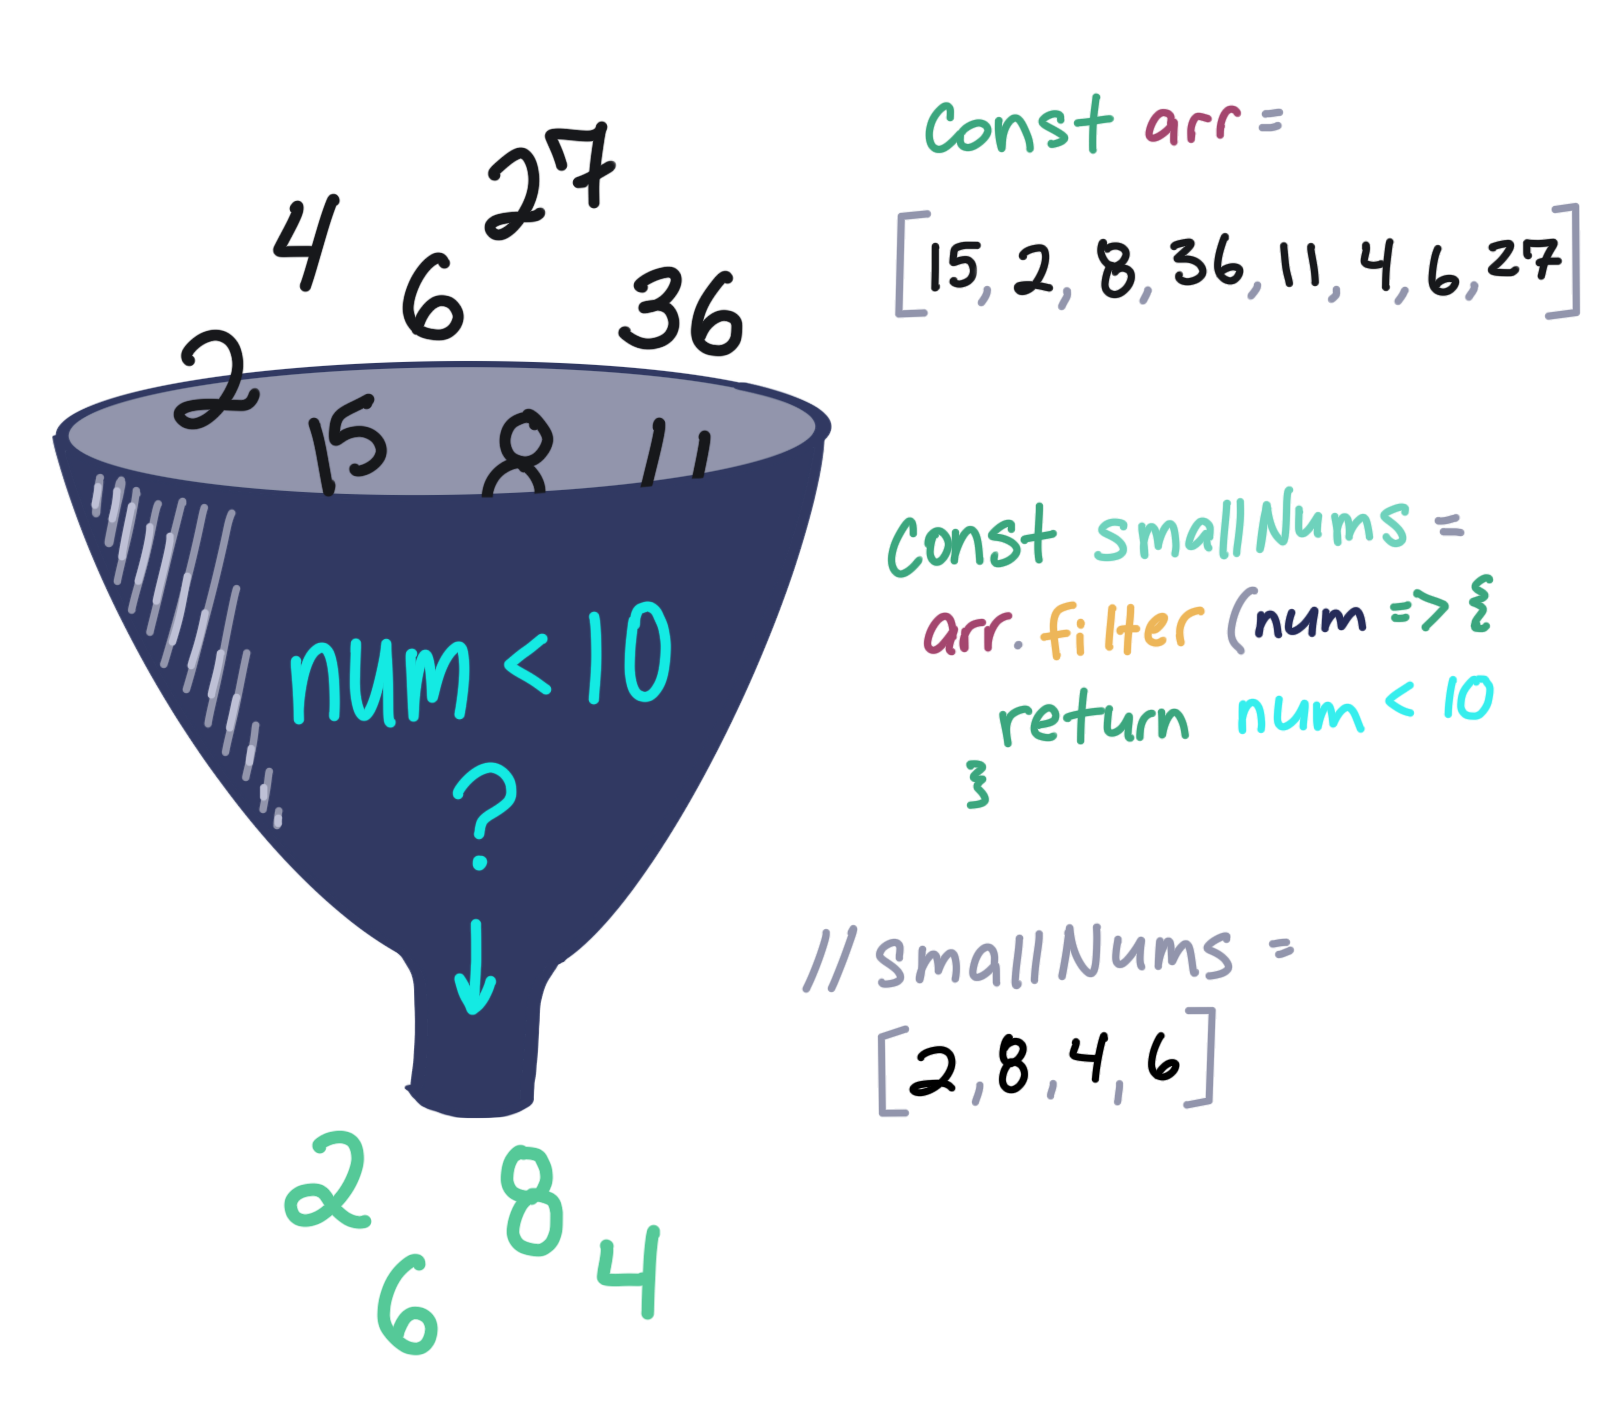 An illustration of a funnel with numbers going in the top and a few coming out of the bottom next to a handwritten version of the code covered in this section.